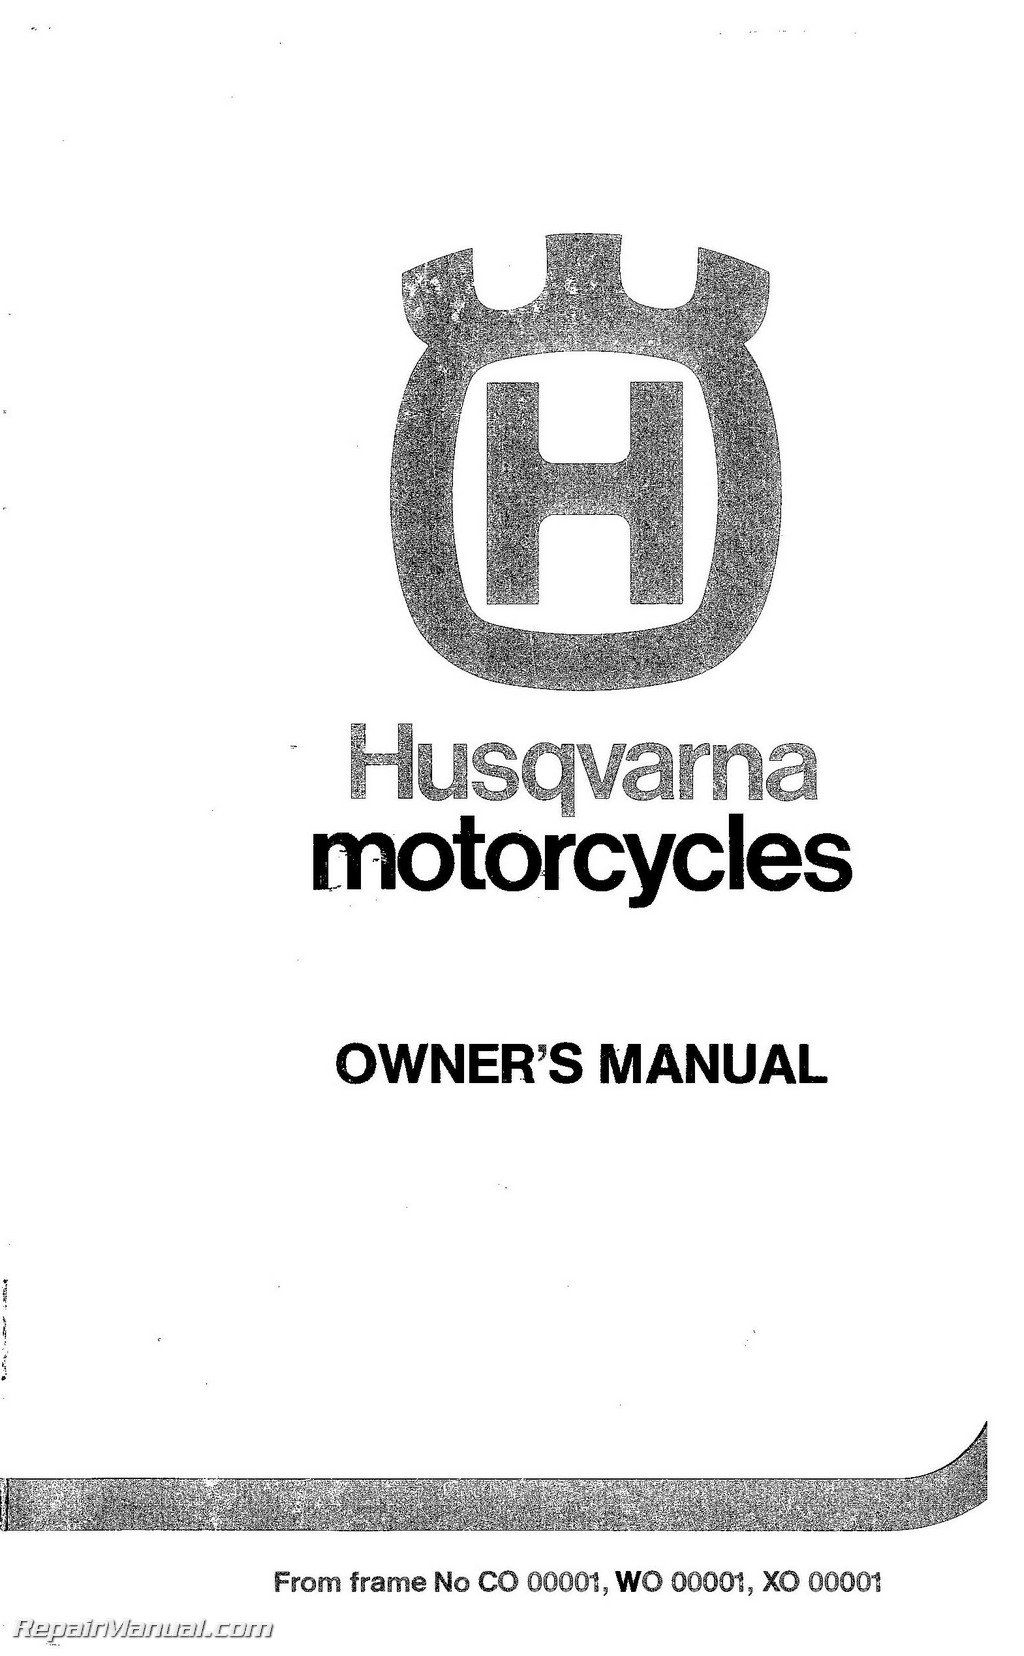 1983 1984 1985 husqvarna motorcycles owners workshop manual rh repairmanual com husqvarna rider 216 service manual husqvarna rider service manual